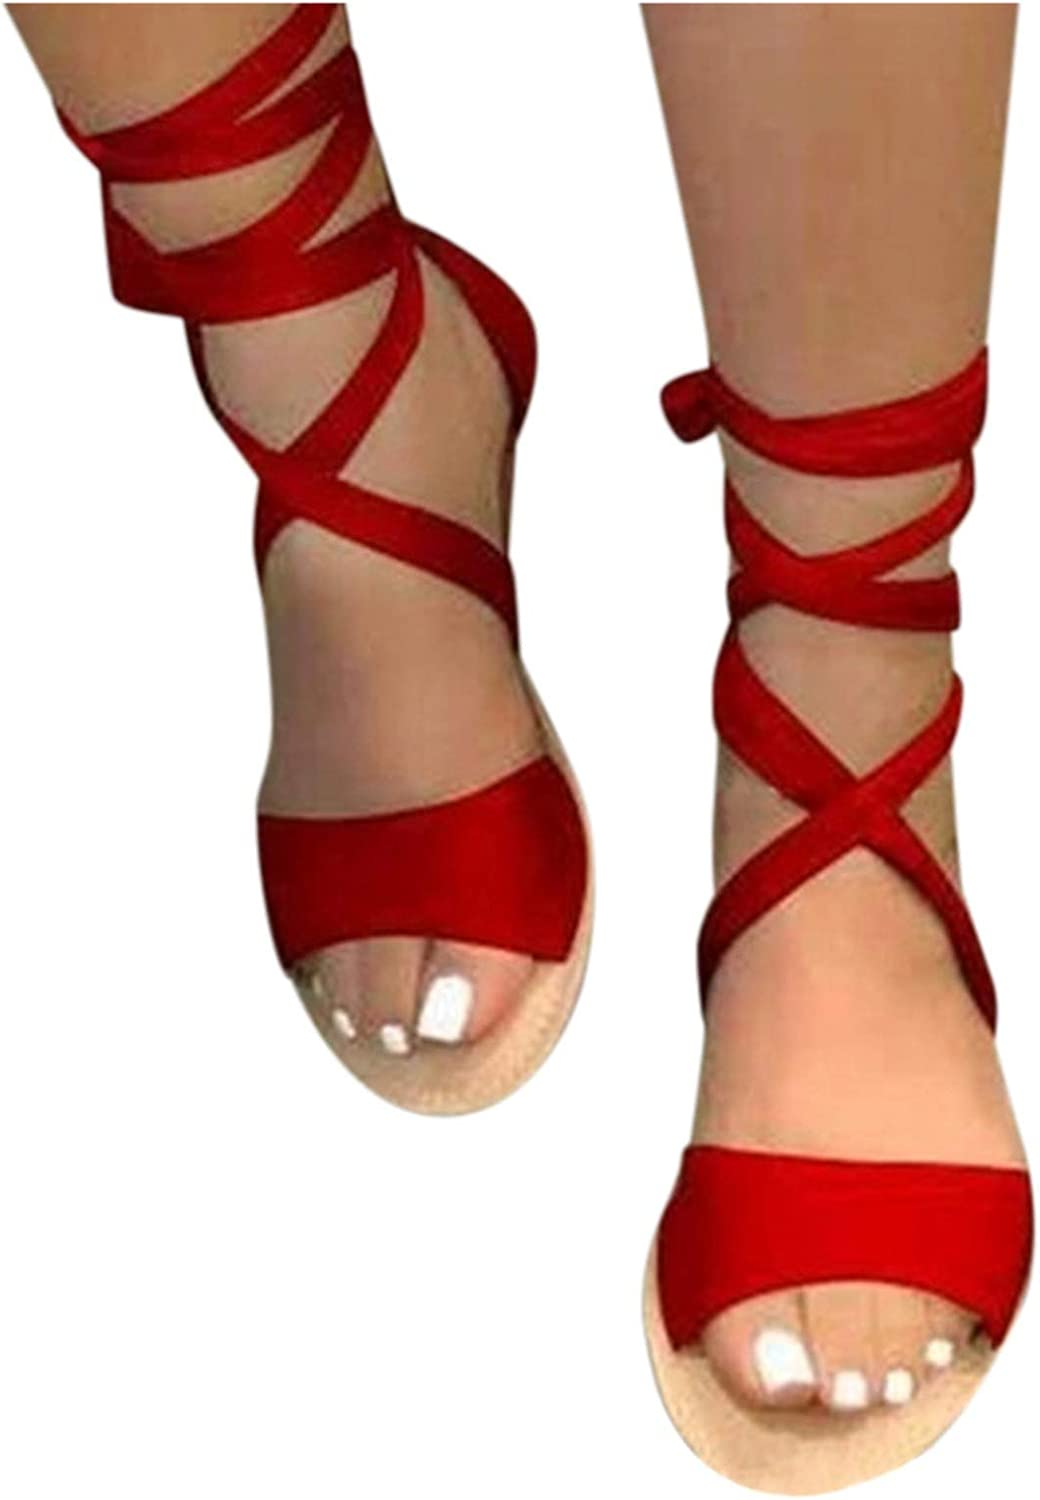 Popular asian style shoes   Fashion, Fashion sandals, Only